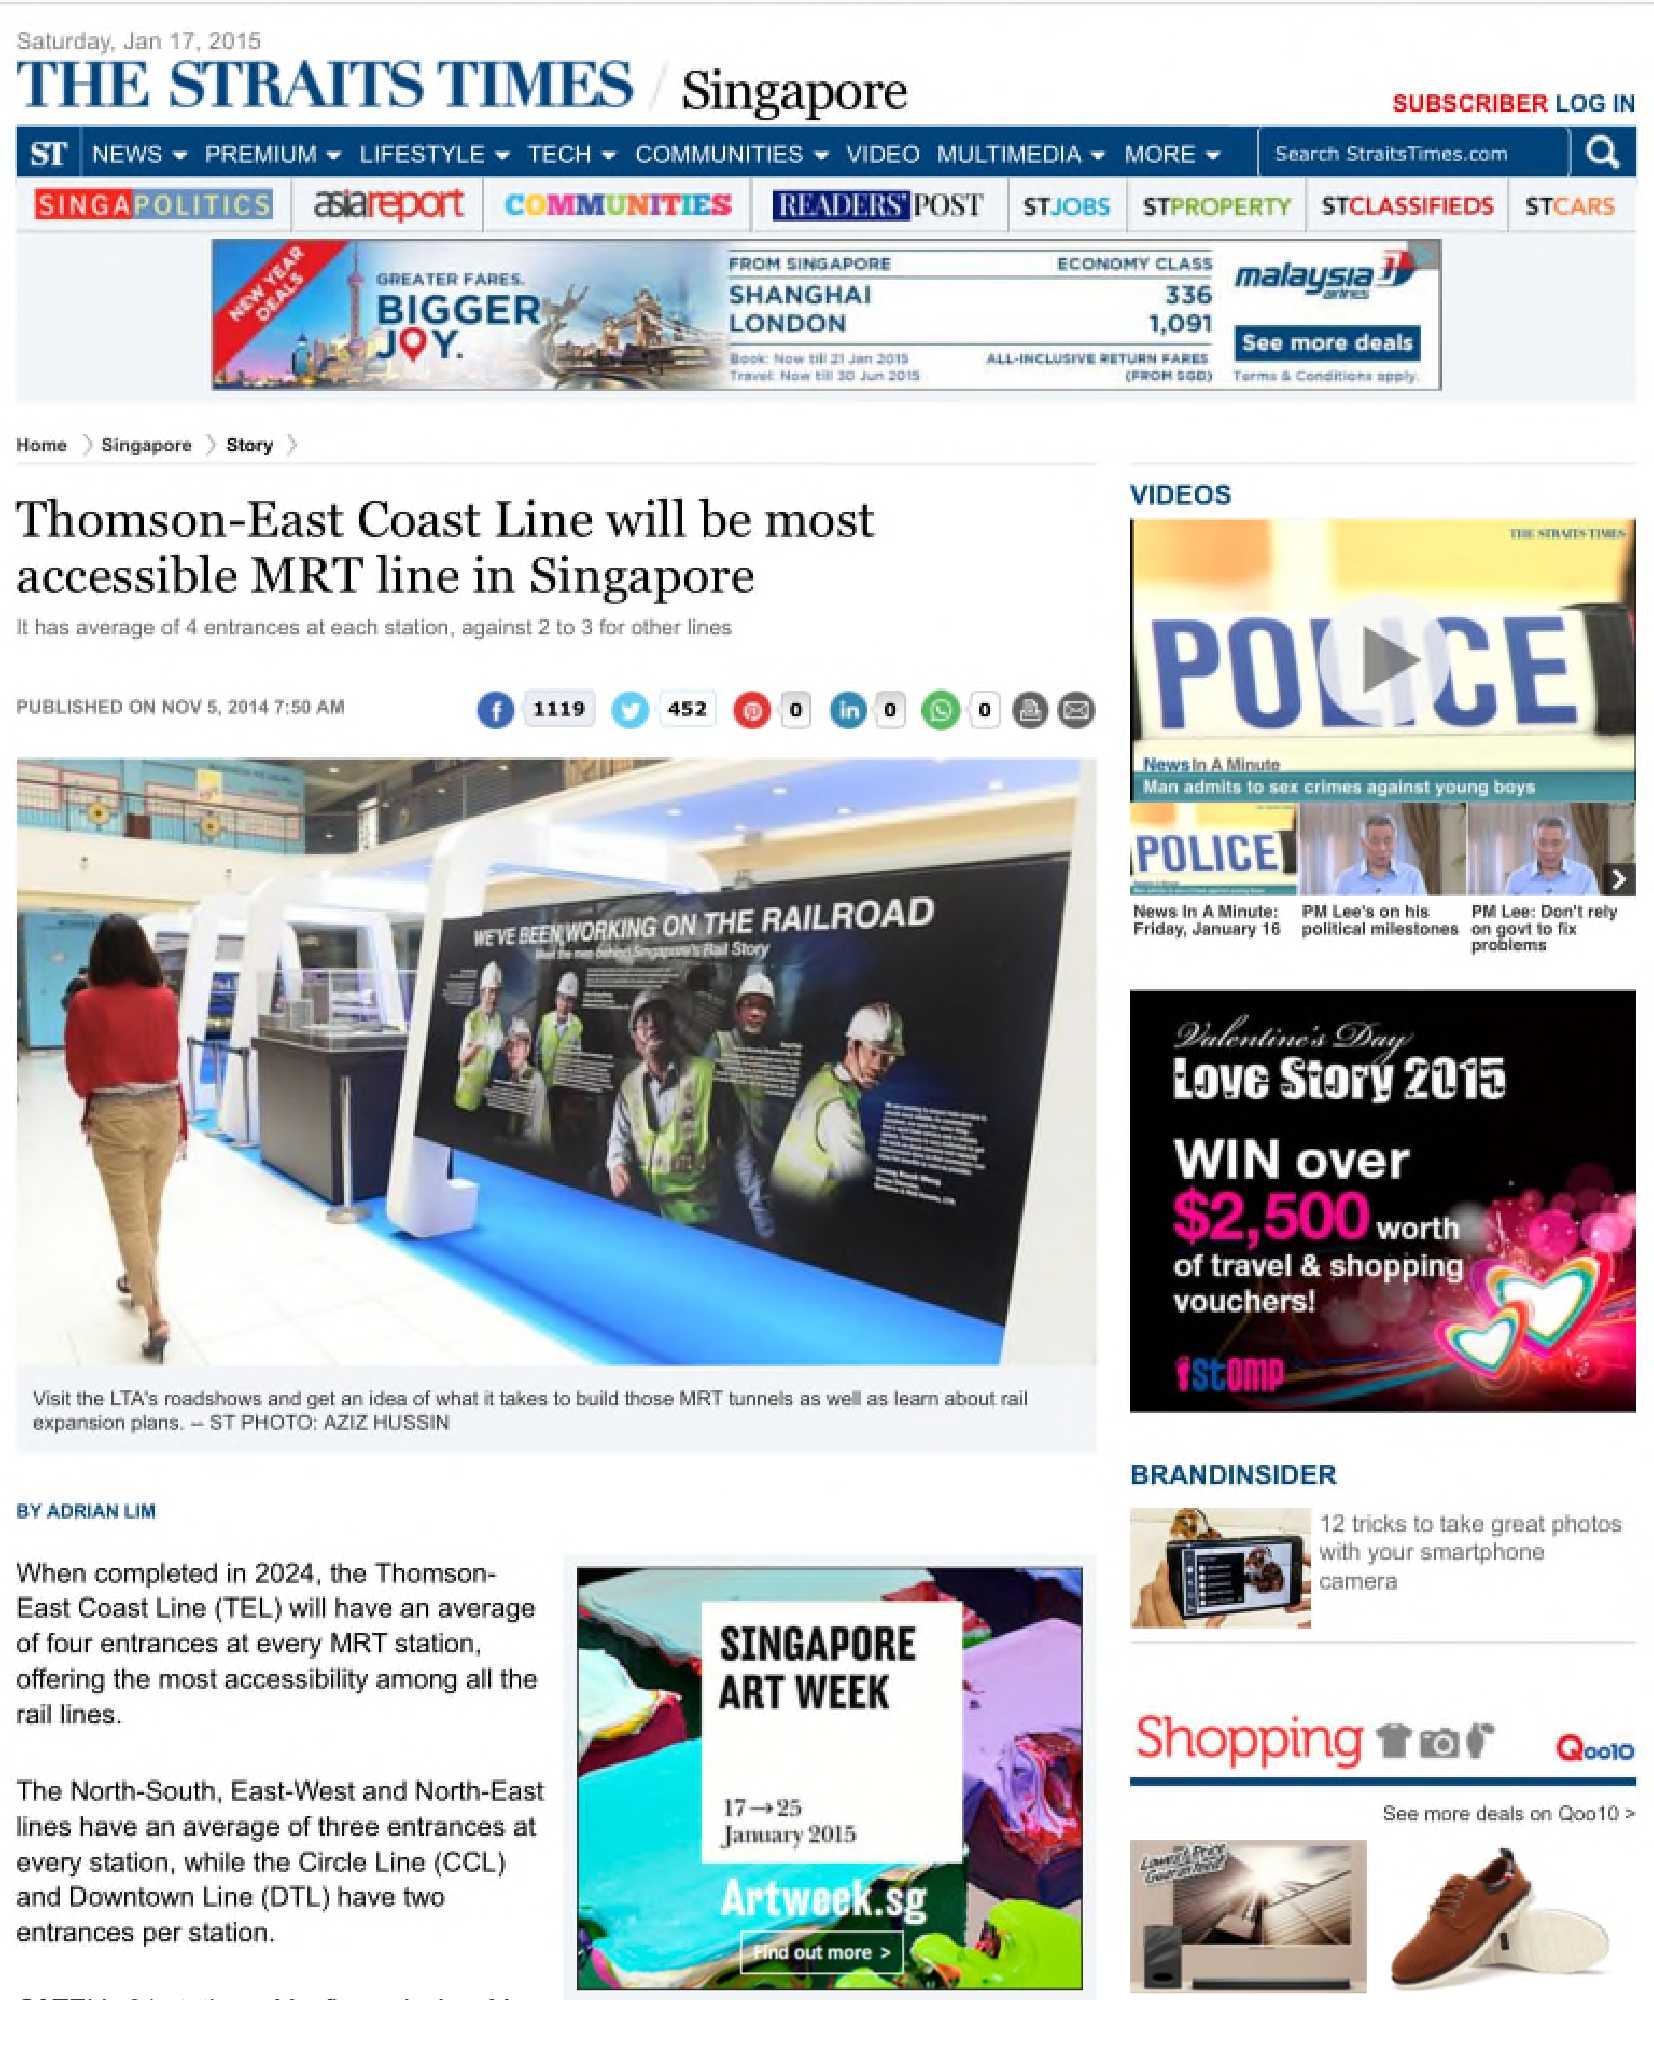 Straits Time - Thomson East Coast Line Will be most accessible MRT in Singapore